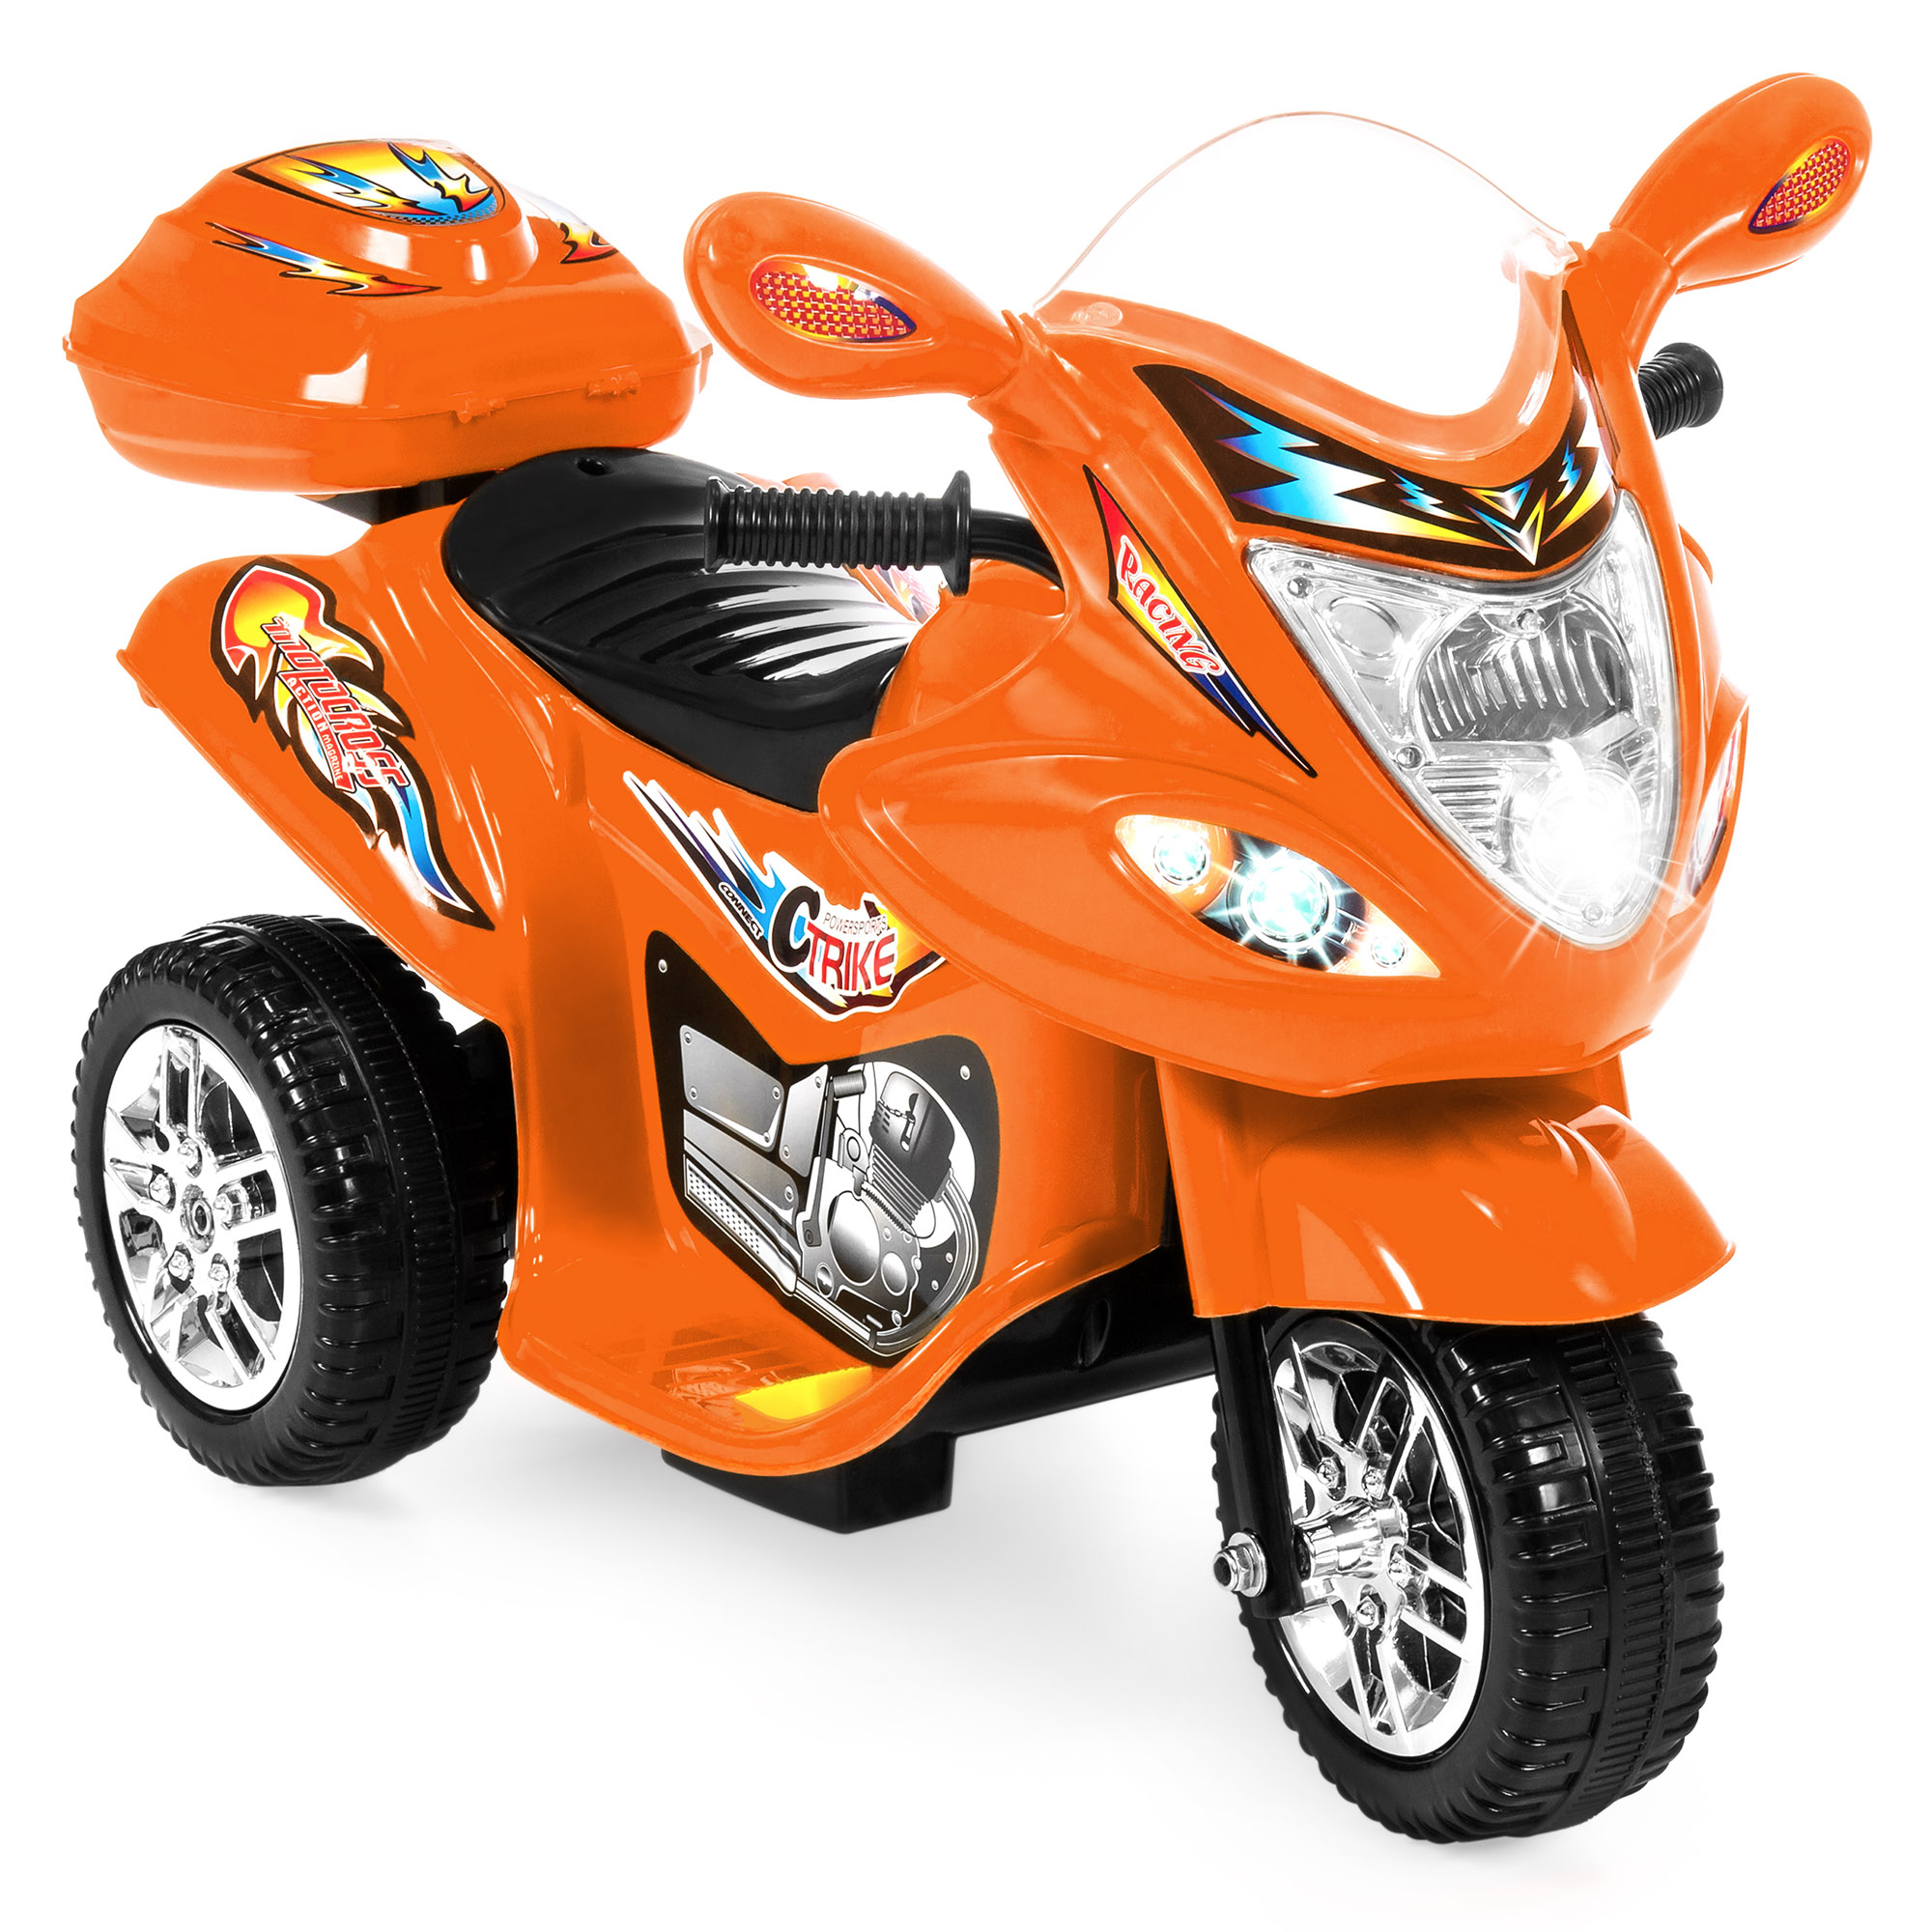 Best Choice Products 6V Kids Battery Powered 3-Wheel Motorcycle Ride-On Toy w/ LED Lights, Music, Horn, Storage - Red